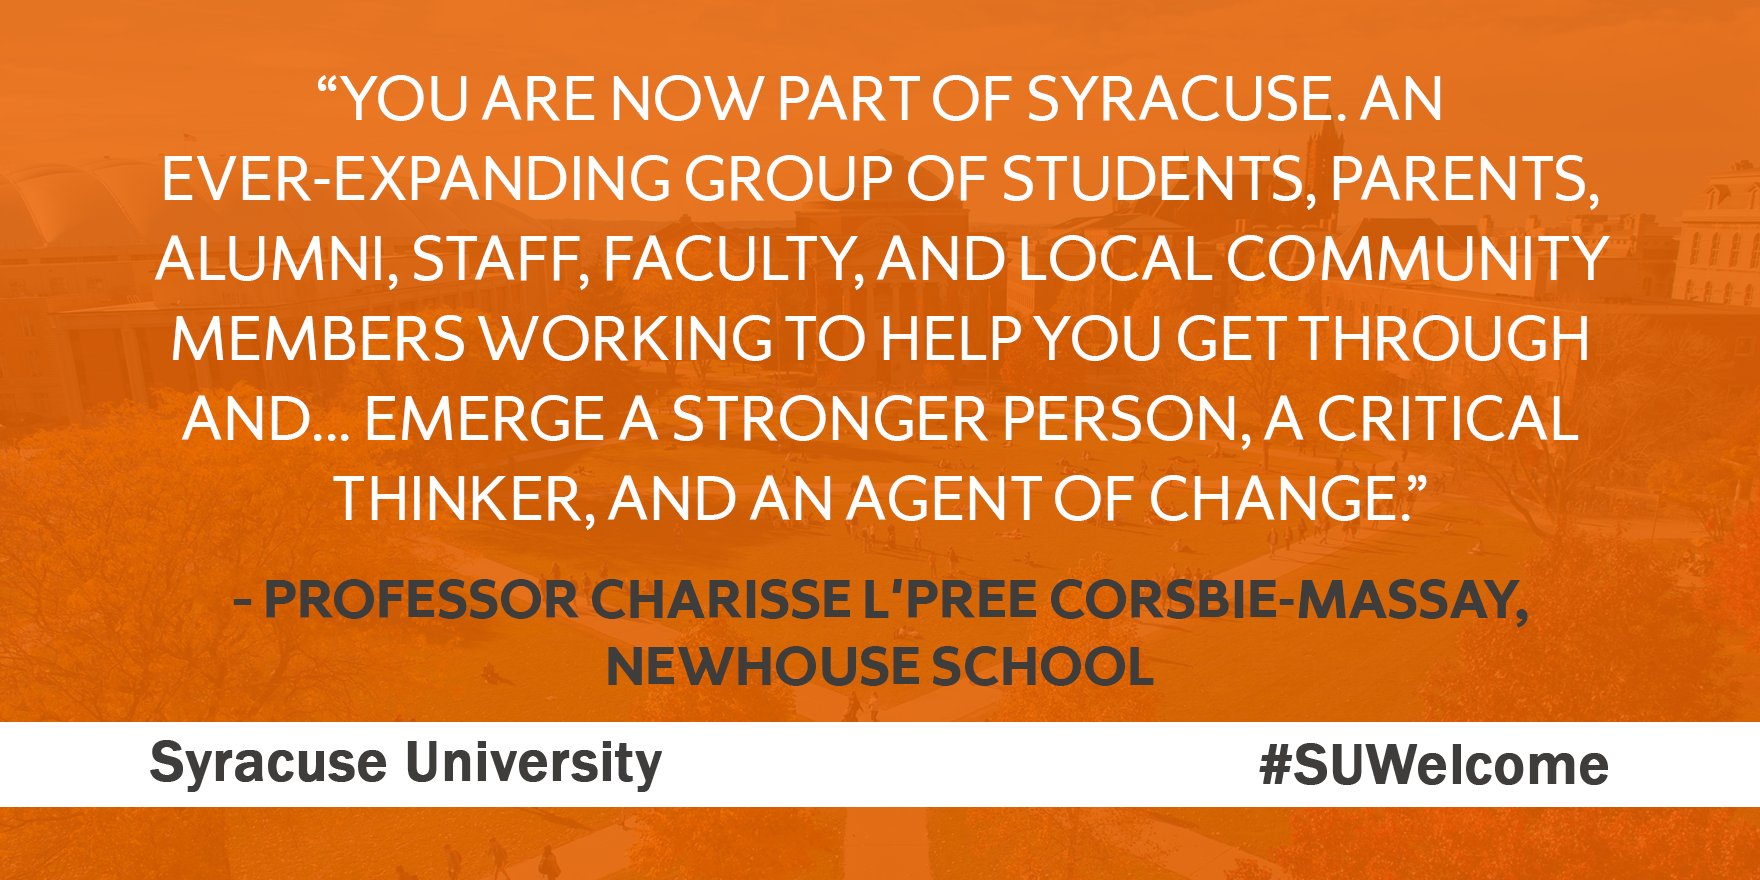 """""""Wherever you came from & however you got here, you are now part of #SyracuseU"""" -@NewhouseSU Prof. Charisse L'Pree Corsbie-Massay #SUWelcome https://t.co/3nTx8Suayb"""